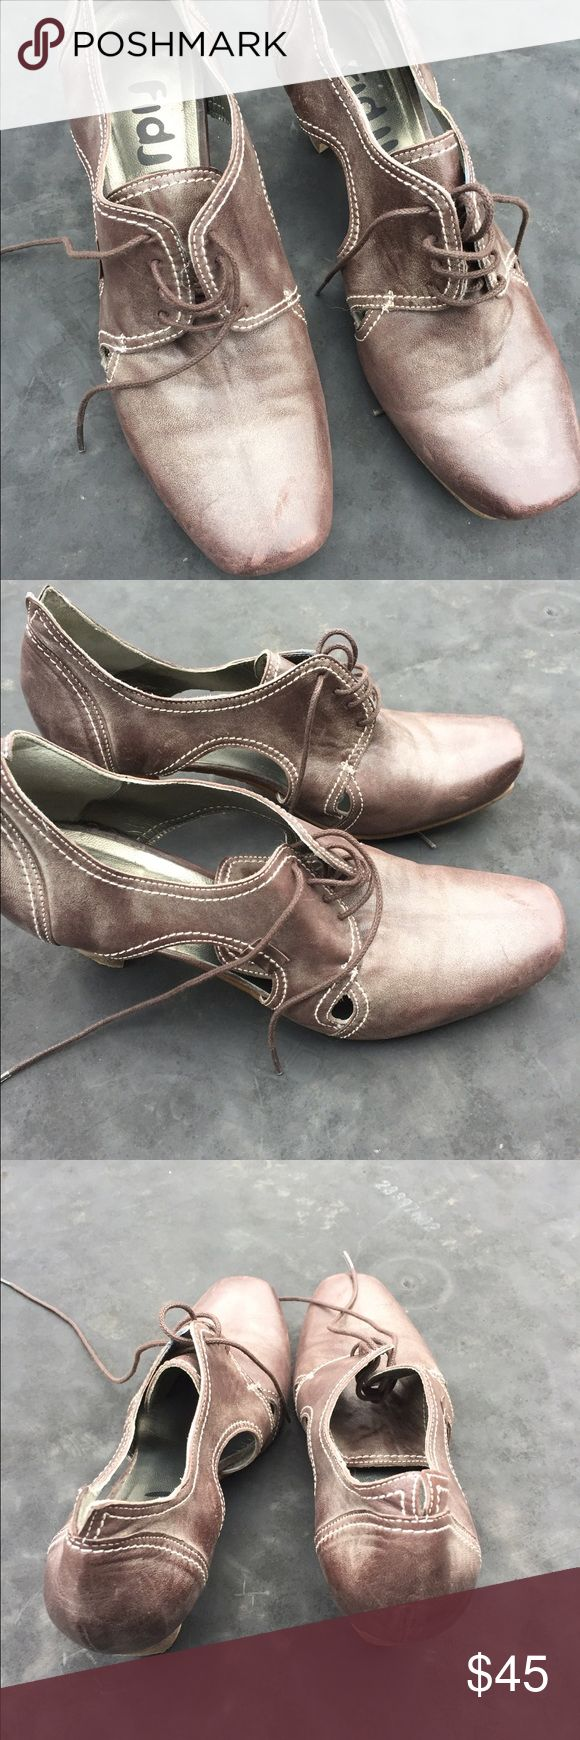 Women Fidji shoes size 40 Worn but in excellent condition very clean almost like new. fidji Shoes